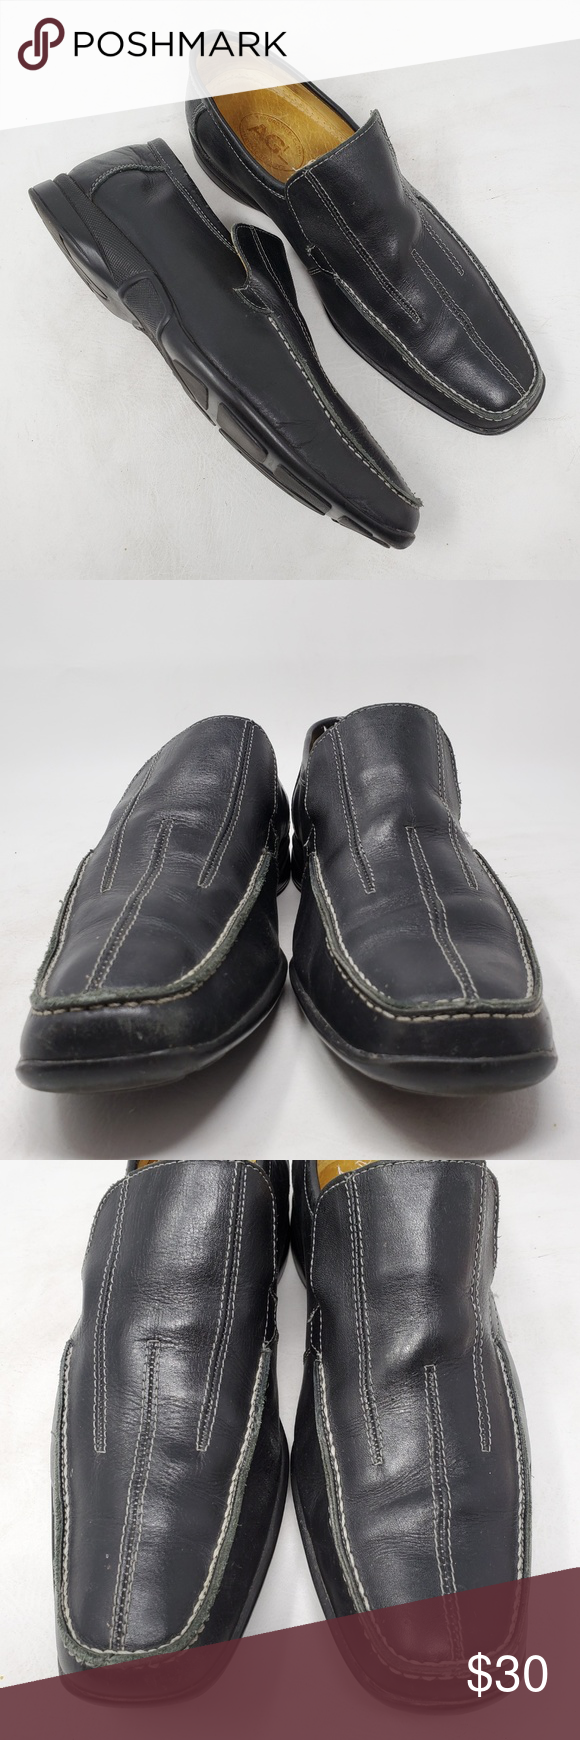 AGL Mens Black Leather Loafers Size 8 D Casual Thank you for stopping in! These are in good preowned condition with minor wear and lots of life left in them!  Please see all pictures as they are the best descriptors.   •Brand: AGL (Attilio Giusti Leombruni) •Style: Loafers •Color: Black •Material: Leather  •Size: US 8 D • Sole: 3 7/8